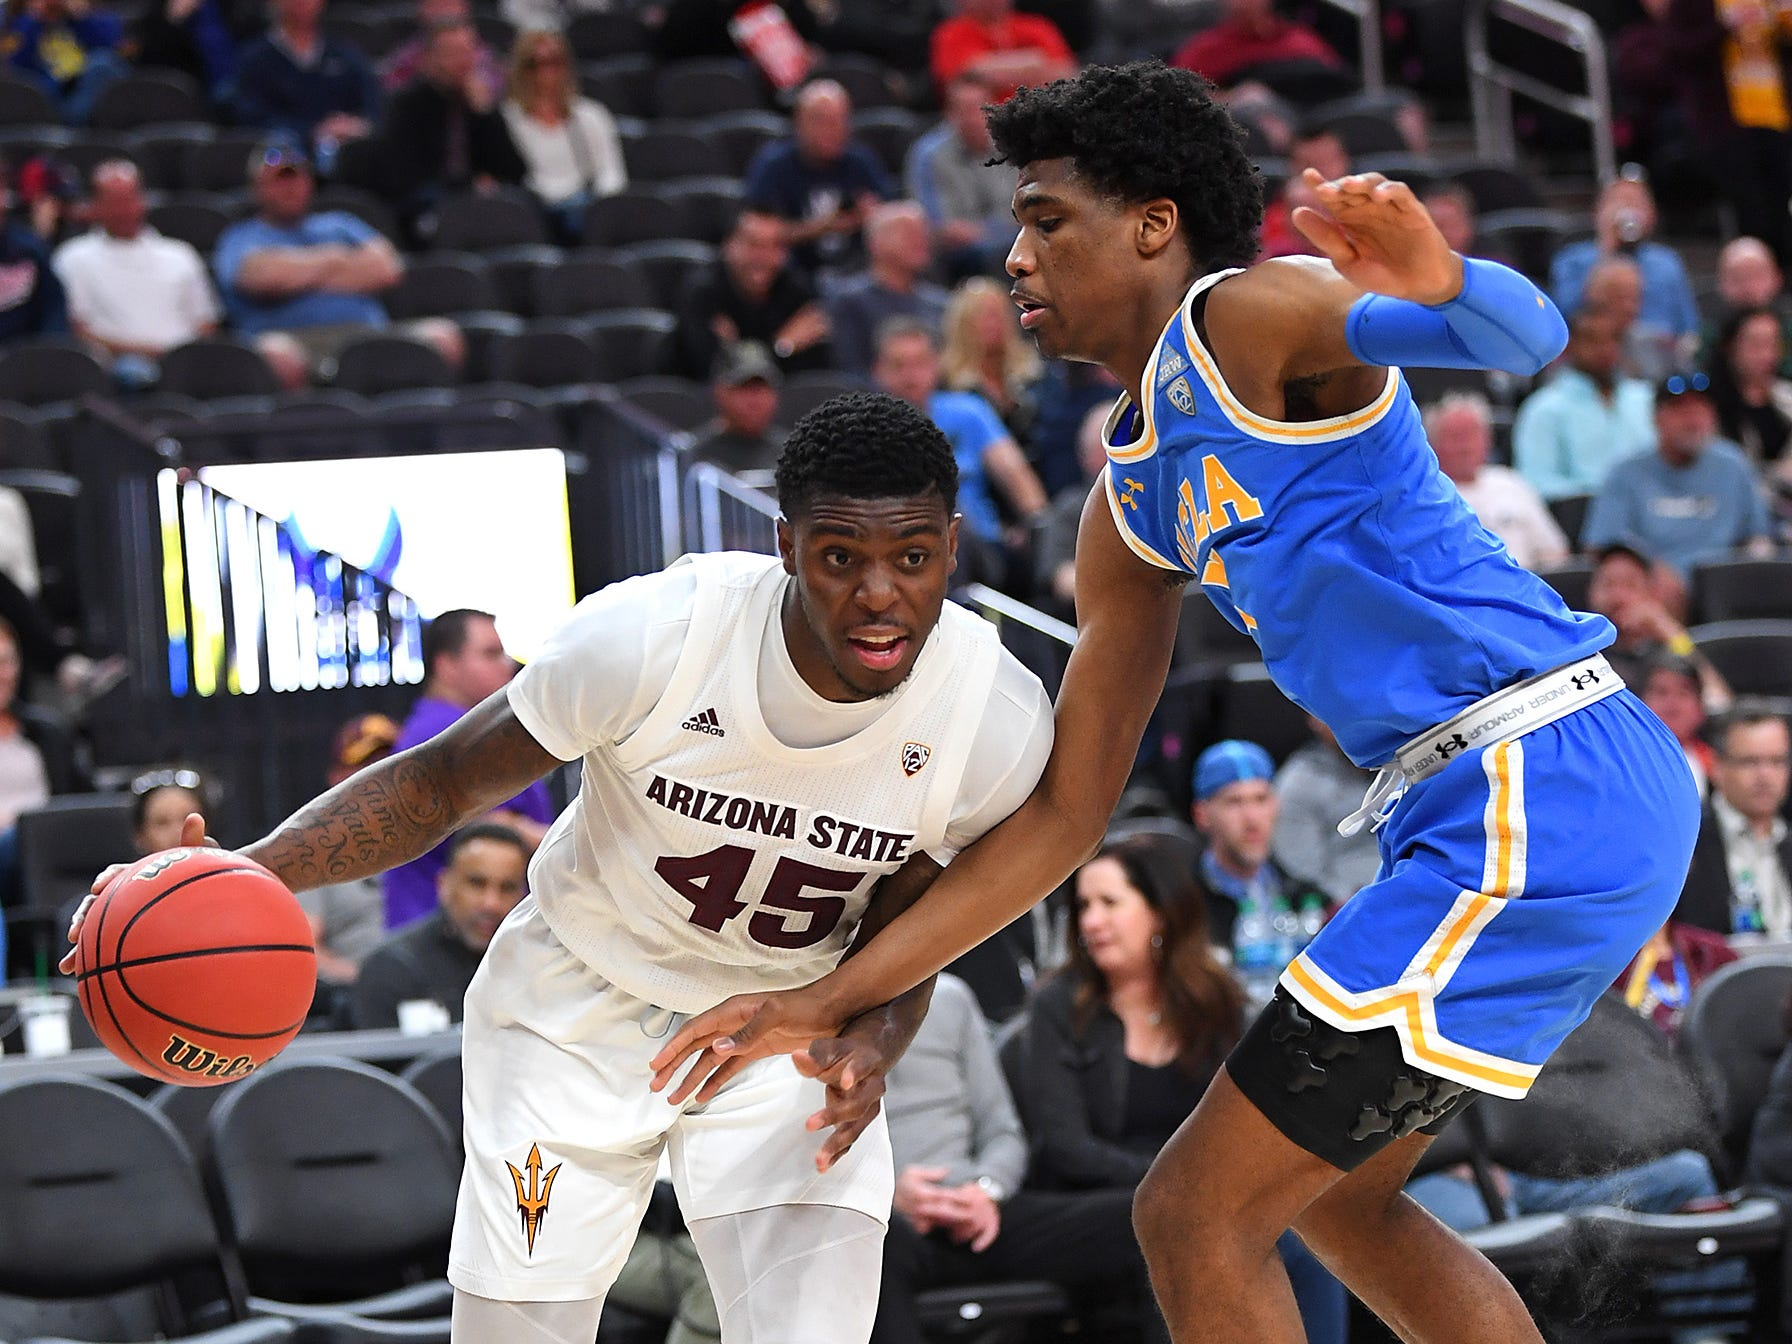 Mar 14, 2019; Las Vegas, NV, United States; Arizona State Sun Devils forward Zylan Cheatham (45) dribbles against UCLA Bruins guard Chris Smith (5) during the first half of a Pac-12 conference tournament game at T-Mobile Arena.